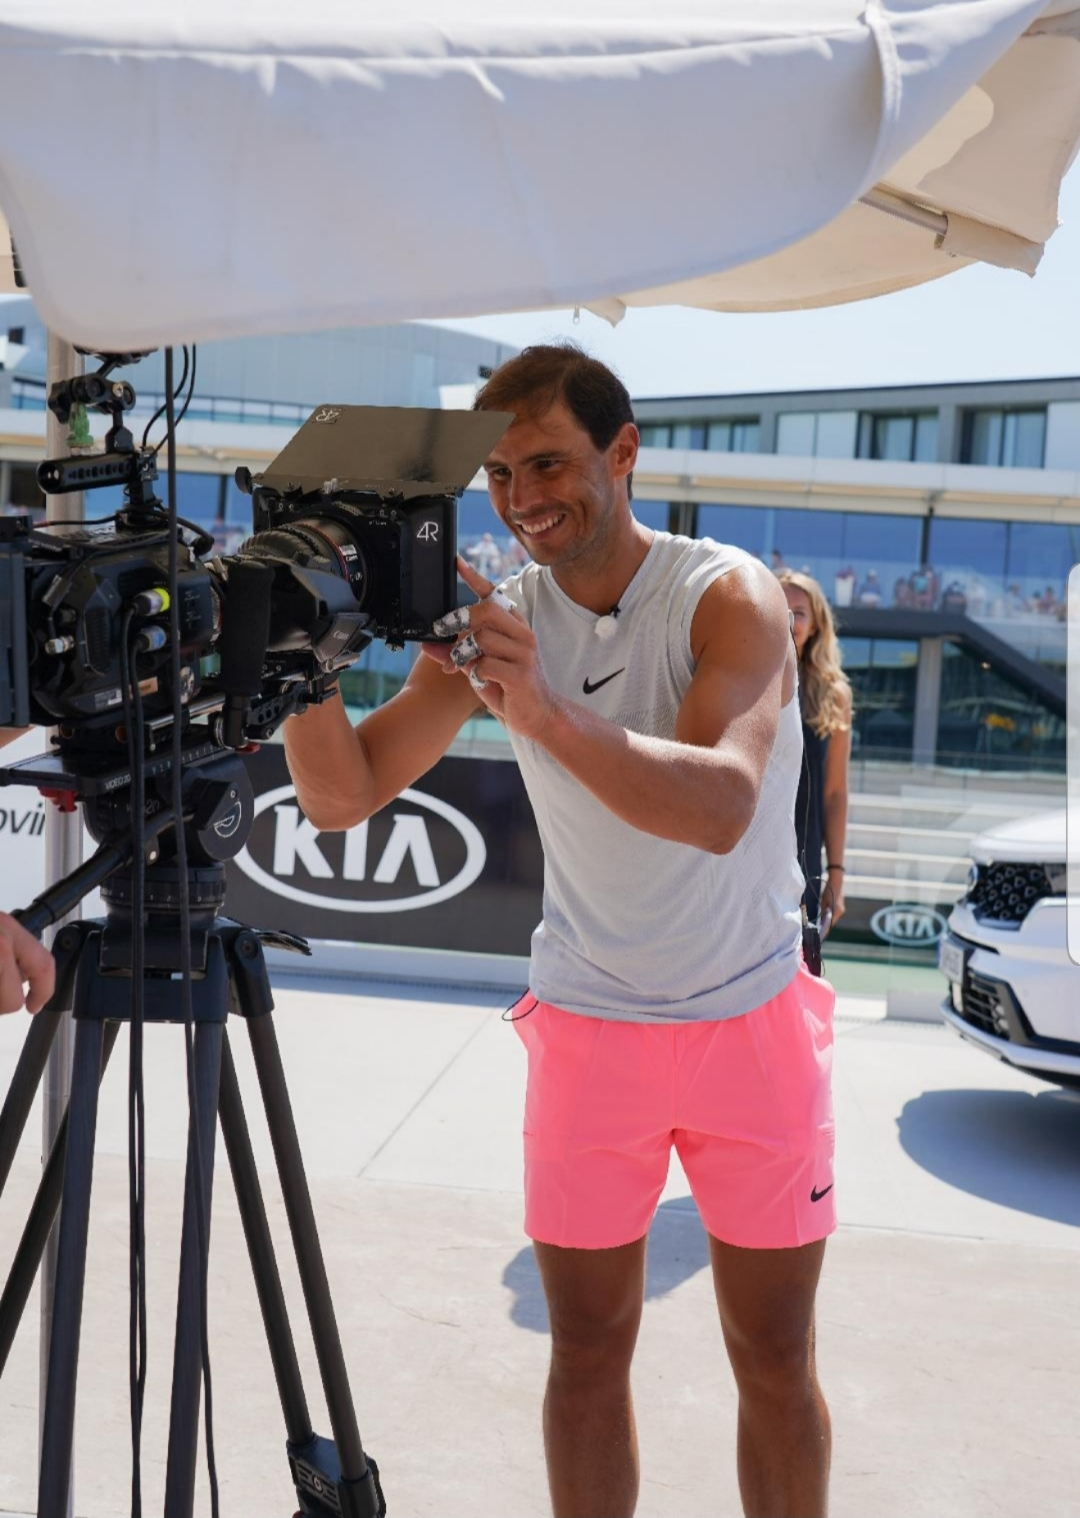 KIA AND RAFAEL NADAL EXTEND BRAND AMBASSADOR PARTNERSHIP IN LIVE-STREAM TRAINING SESSION